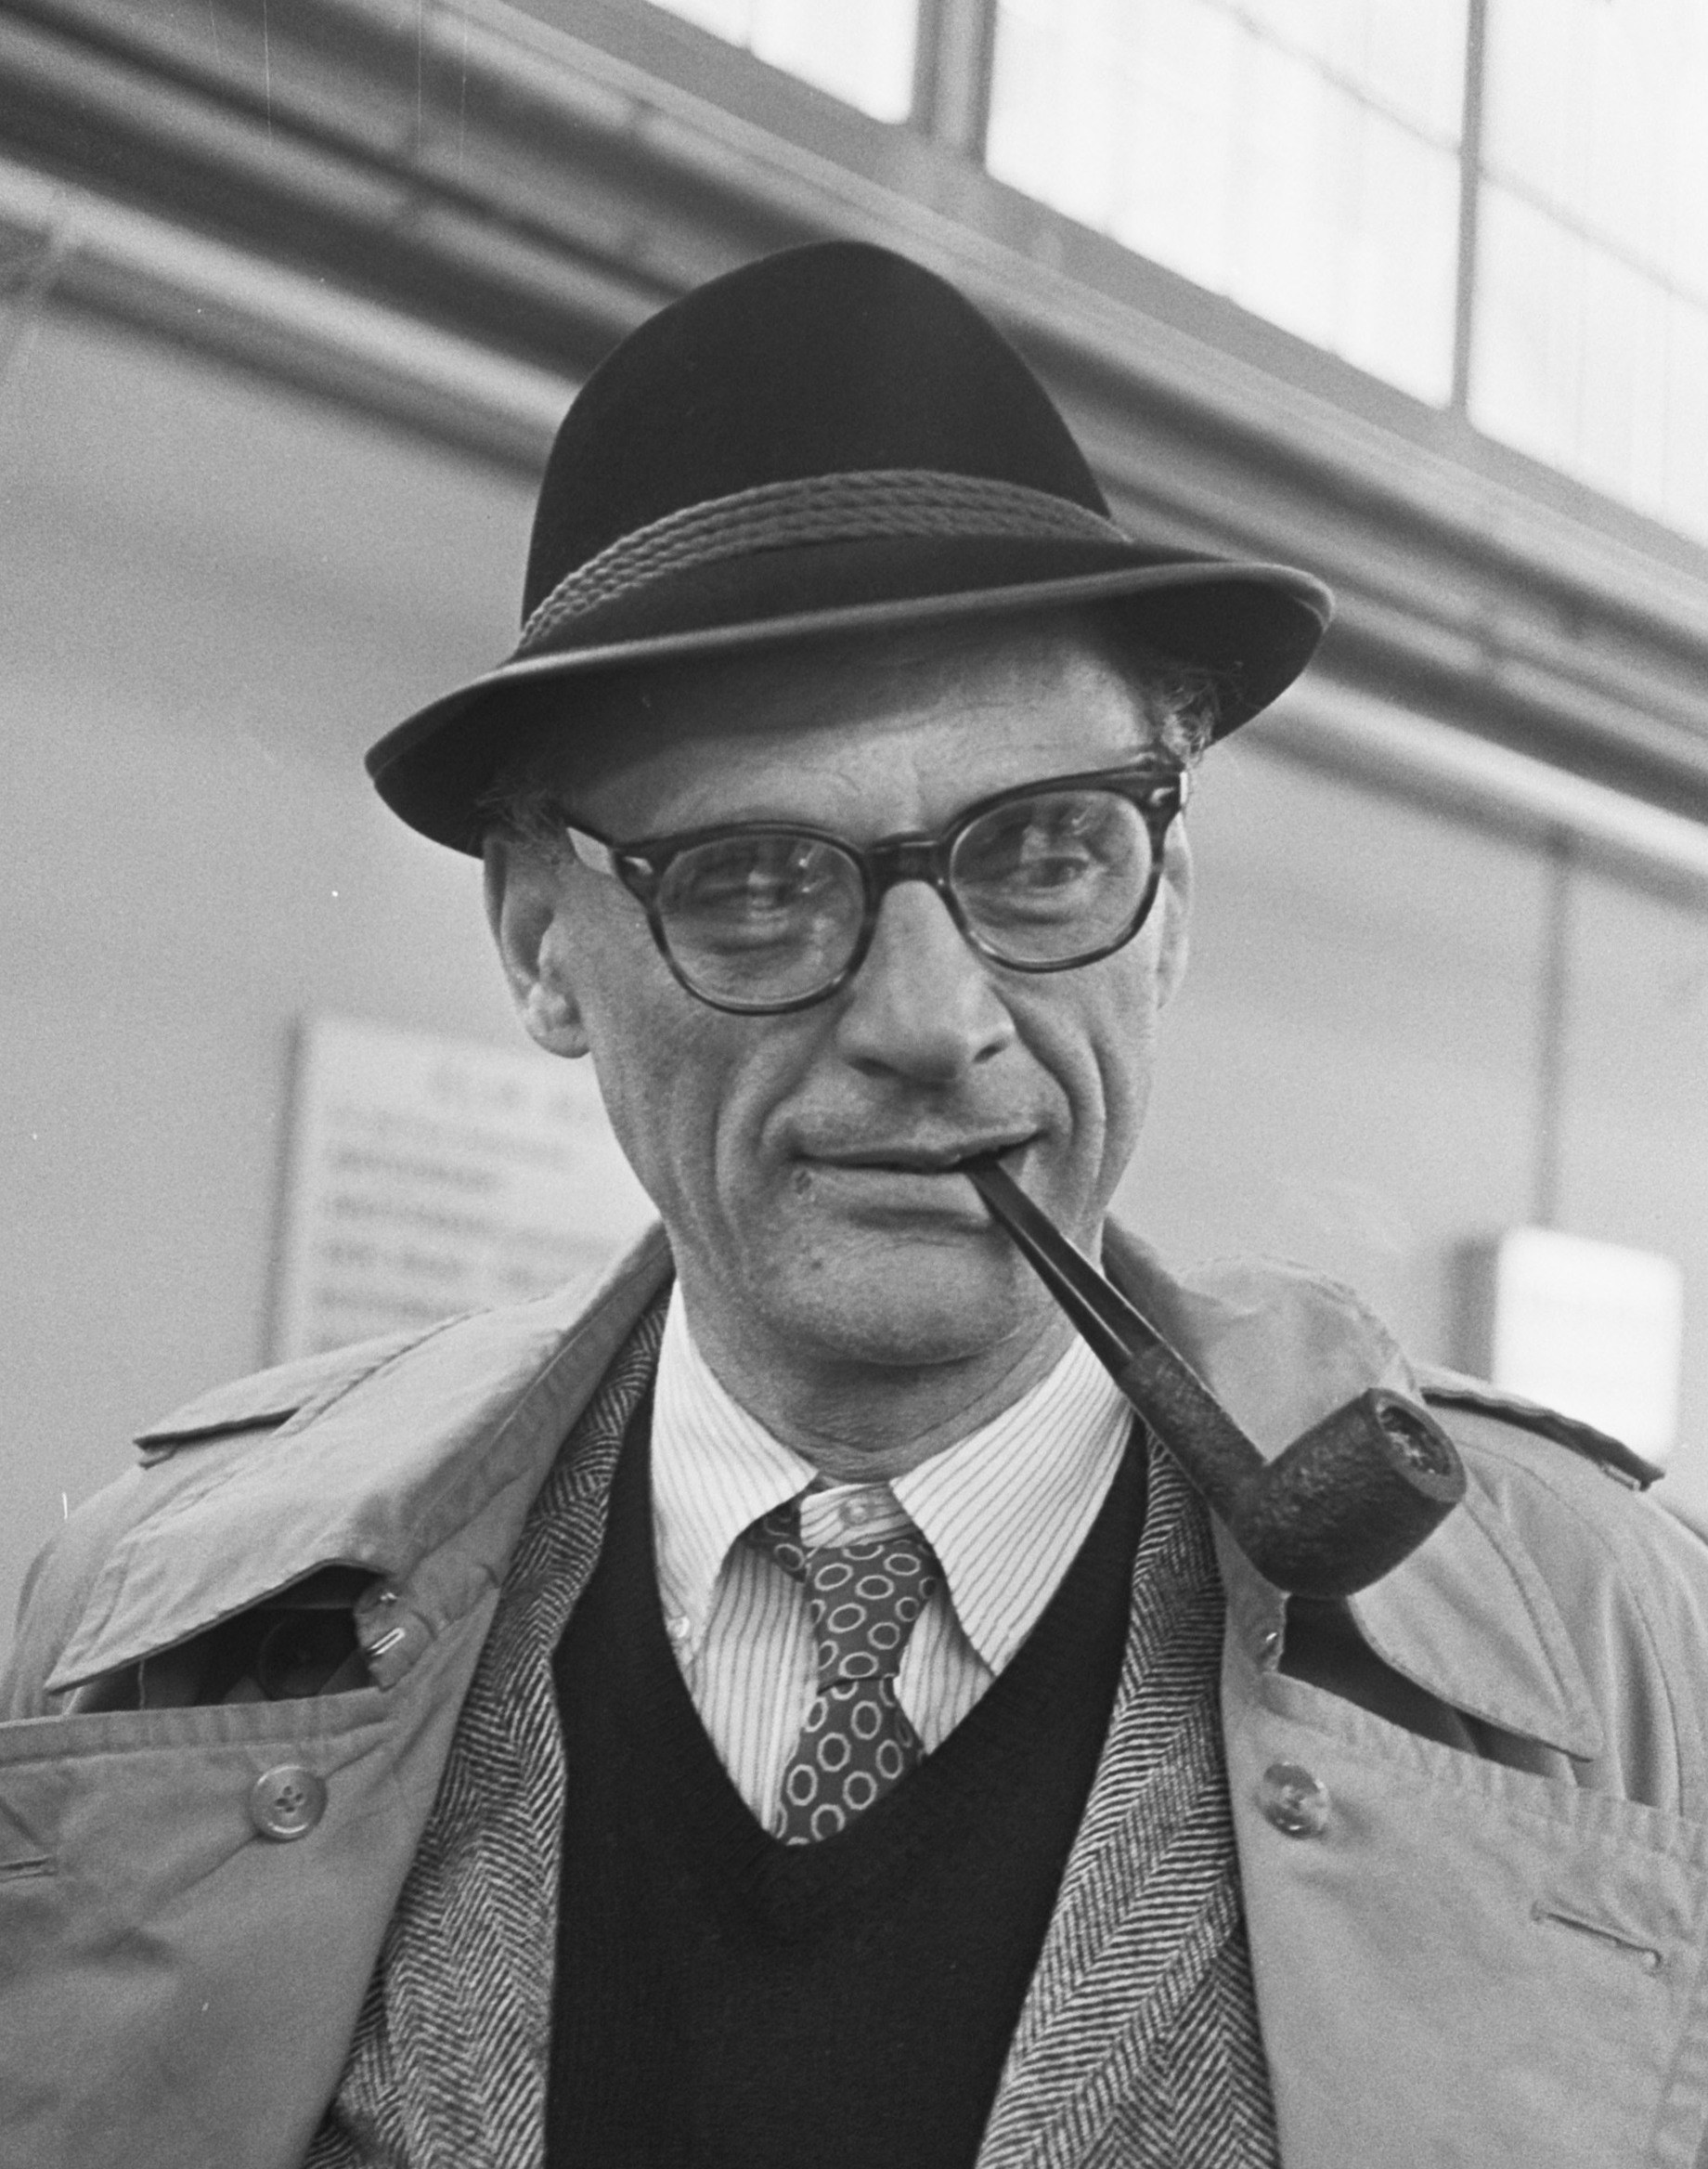 arthur miller literawiki fandom powered by wikia 1966arthurmiller 1966 photograph of arthur miller